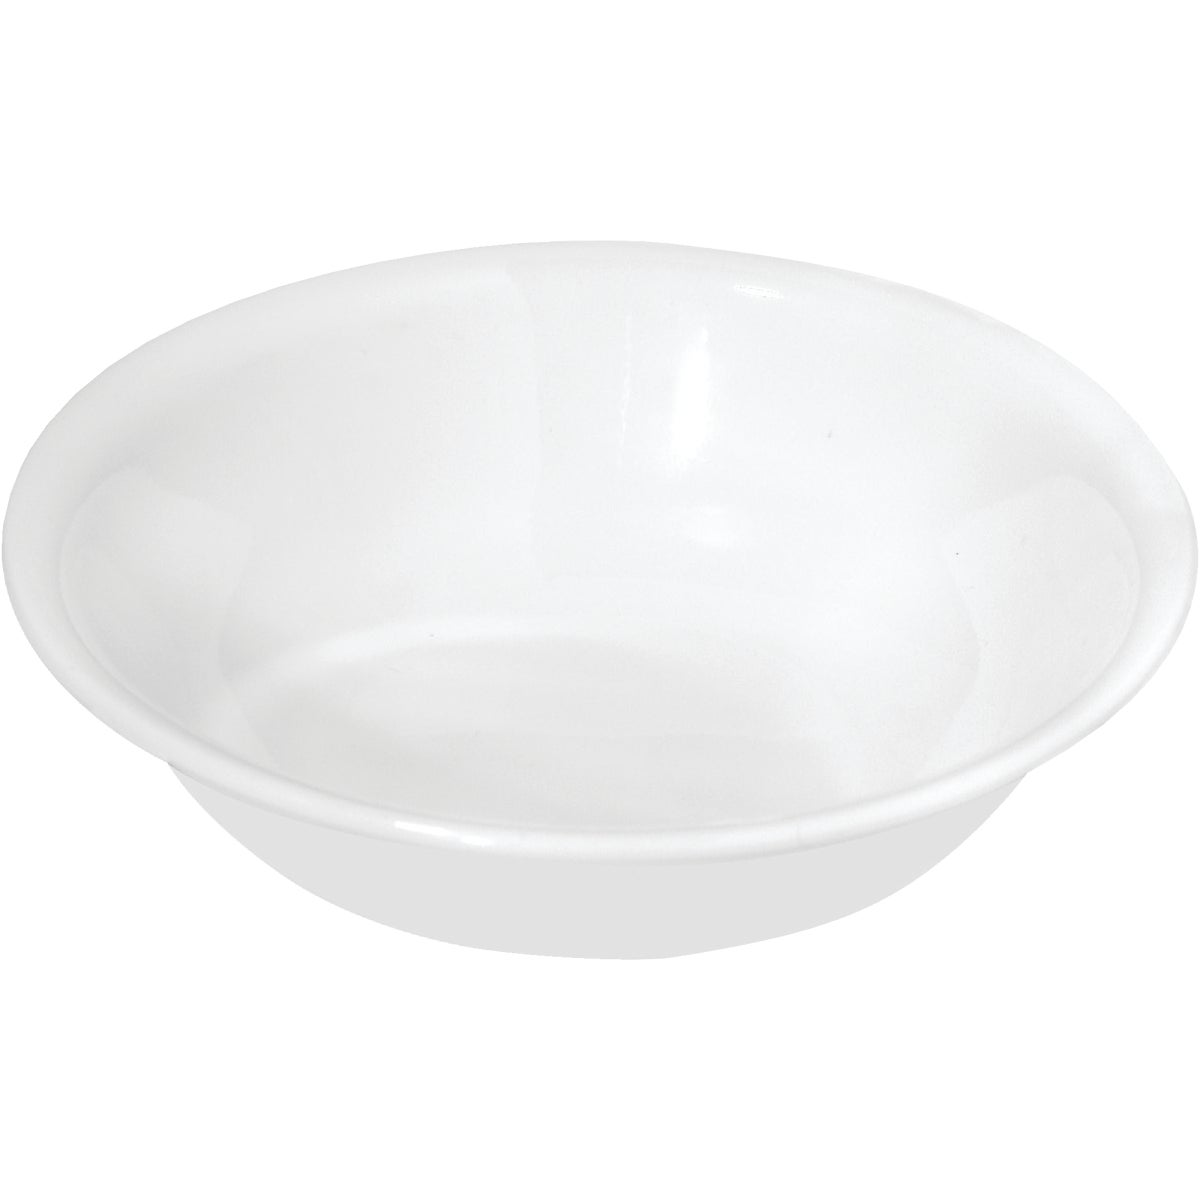 SMALL WHITE BOWL